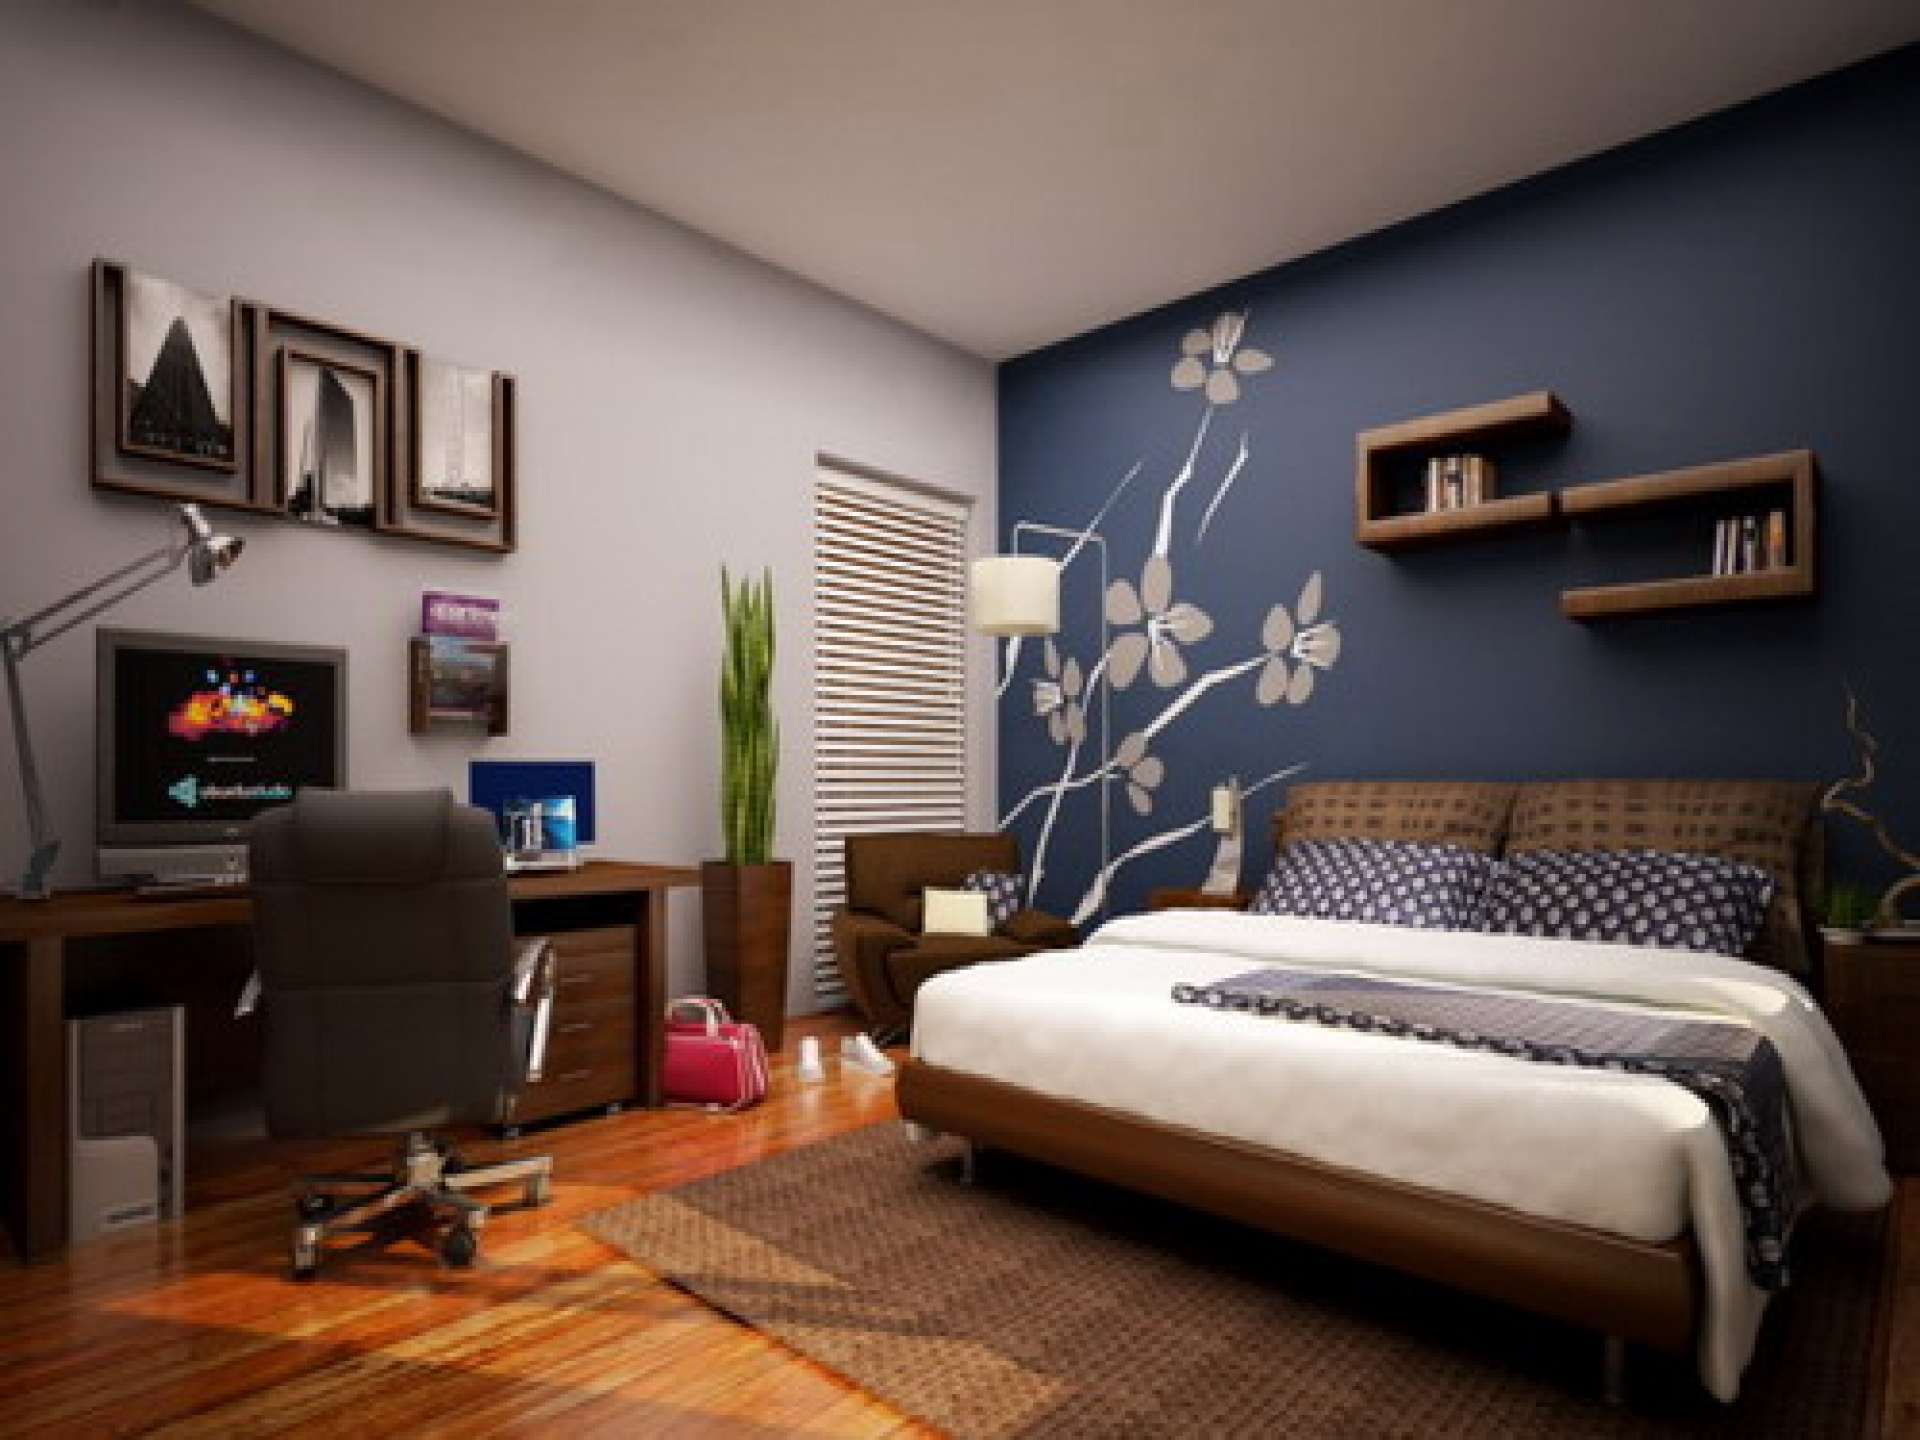 The kitchen designs, modern or traditional, have some distinctive features themselves. Cool Room Painting Ideas for Bedroom Remodeling   Ideas 4 Homes